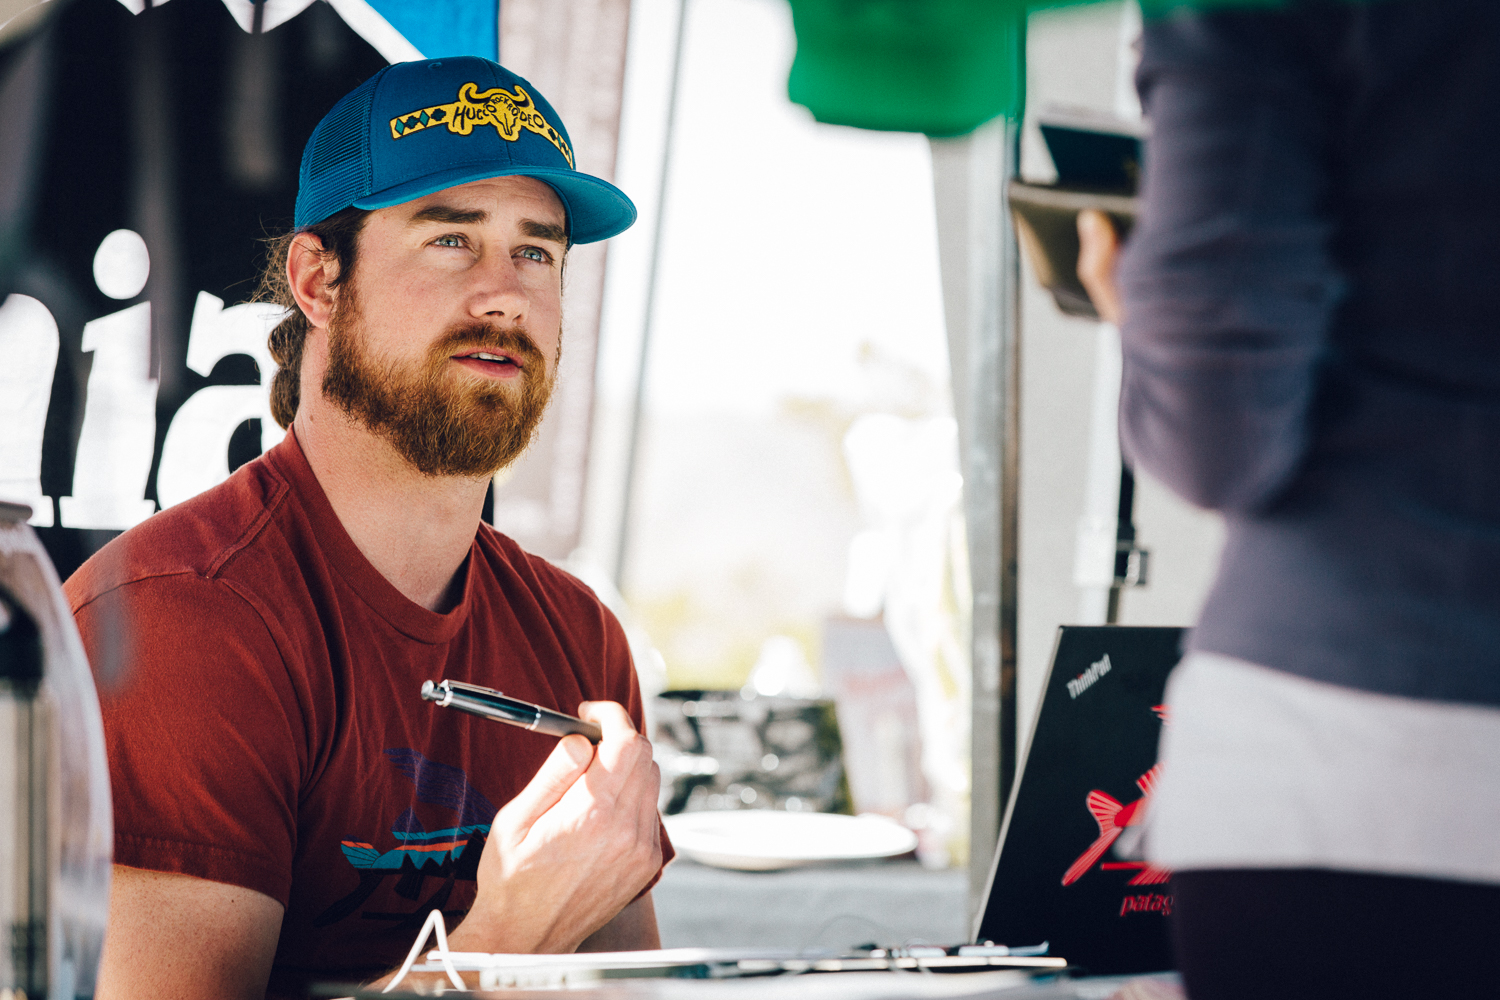 Zach Barker working at the Patagonia Sponsor's booth at the 2015 Rock Rodeo. Michael Lim Photography 2015 ©